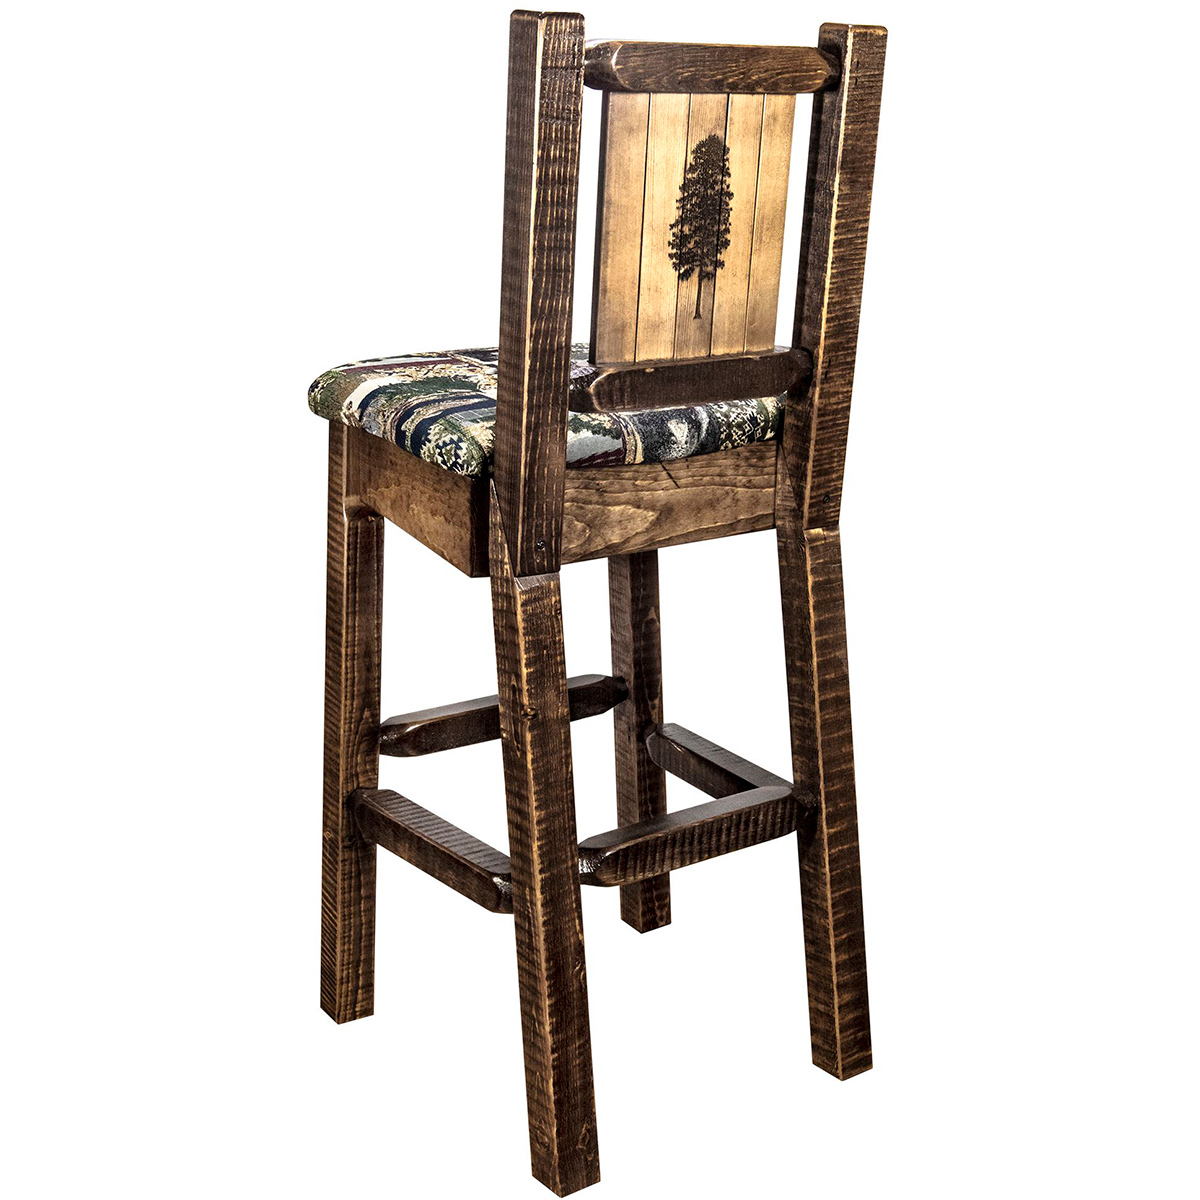 Ranchman's Barstool with Back & Laser-Engraved Pine Tree Design